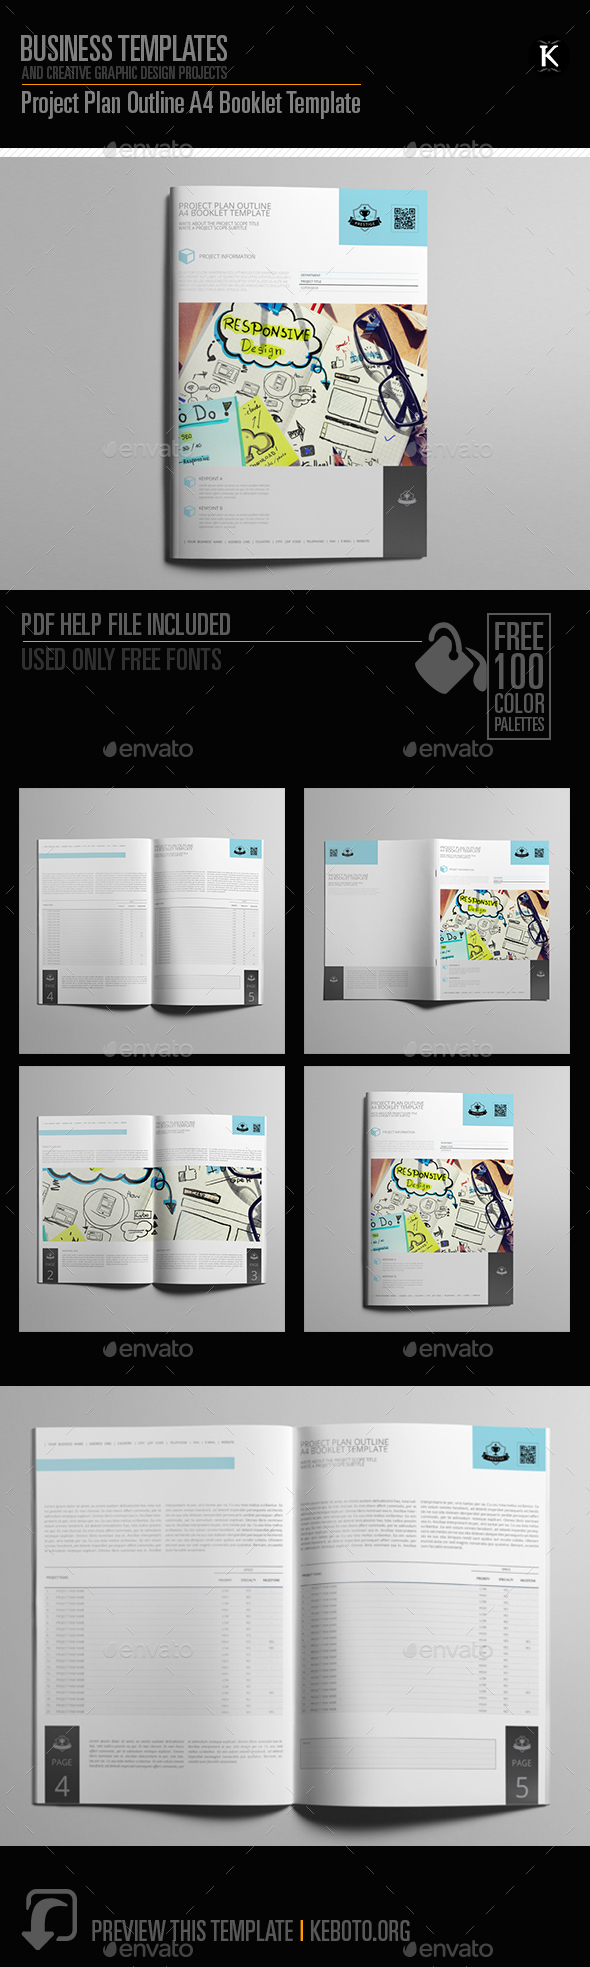 GraphicRiver Project Plan Outline A4 Booklet Template 20546529